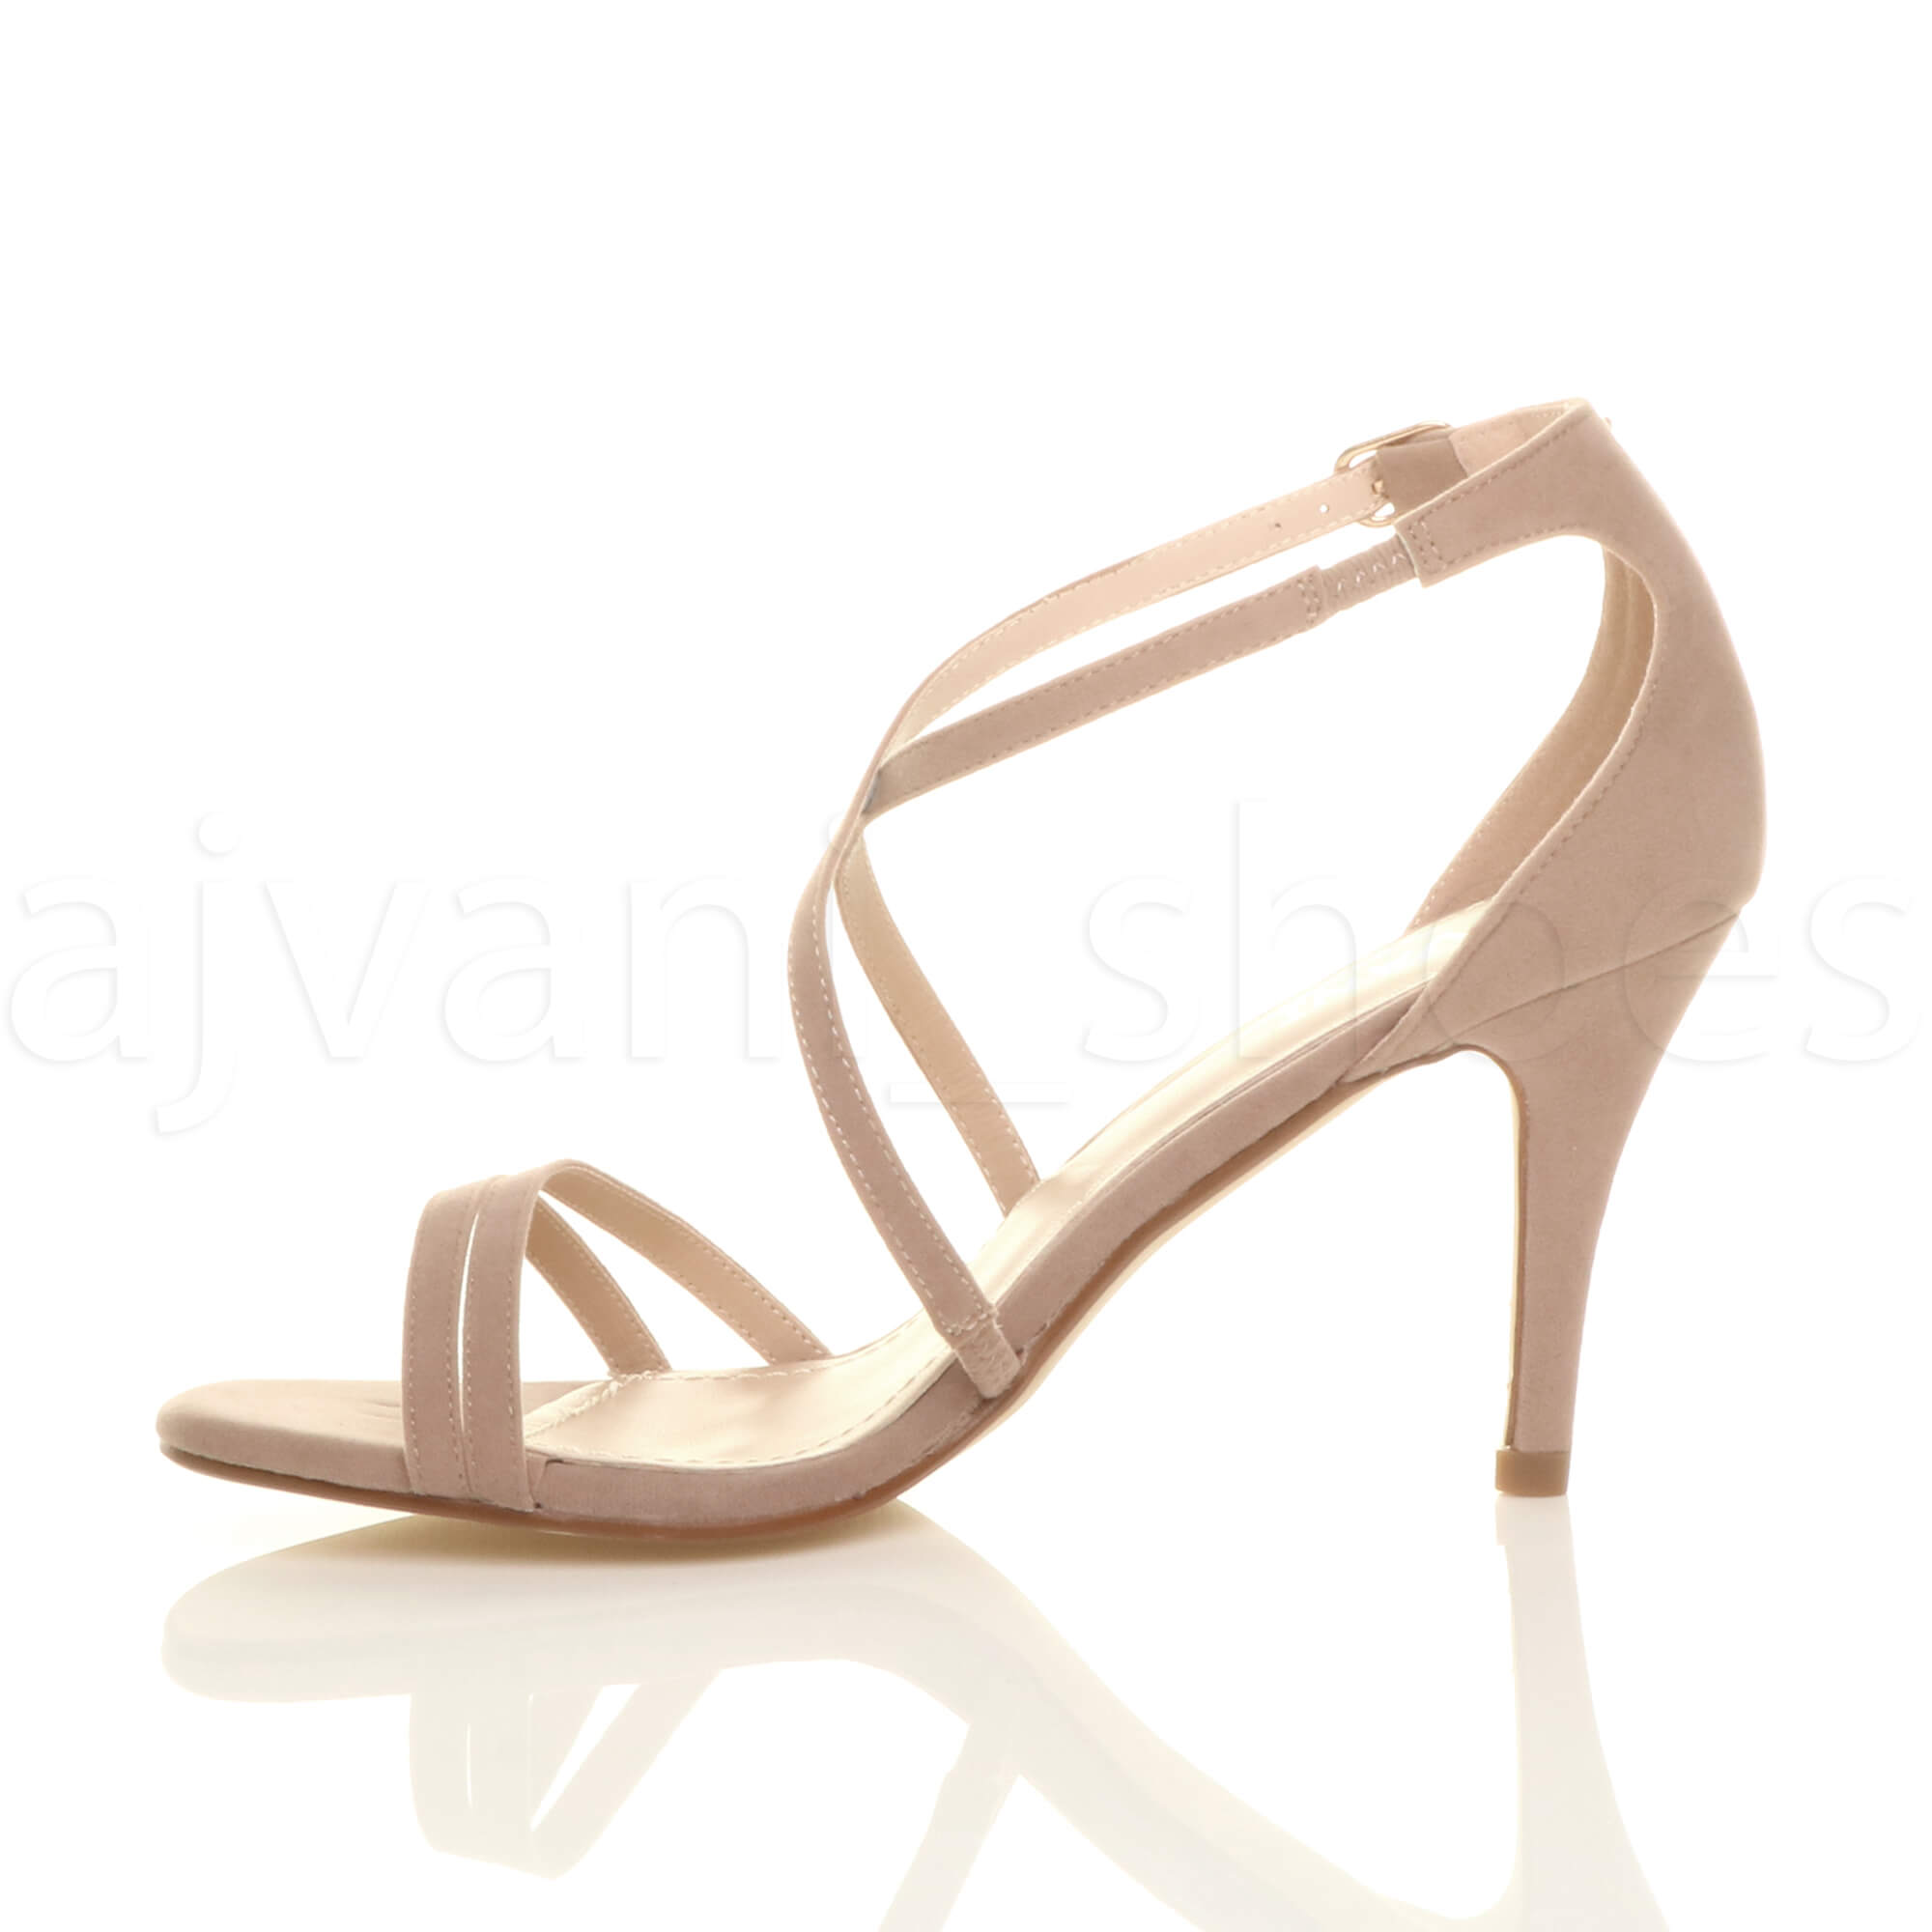 WOMENS-LADIES-MID-HIGH-HEEL-STRAPPY-CROSSOVER-WEDDING-PROM-SANDALS-SHOES-SIZE thumbnail 116